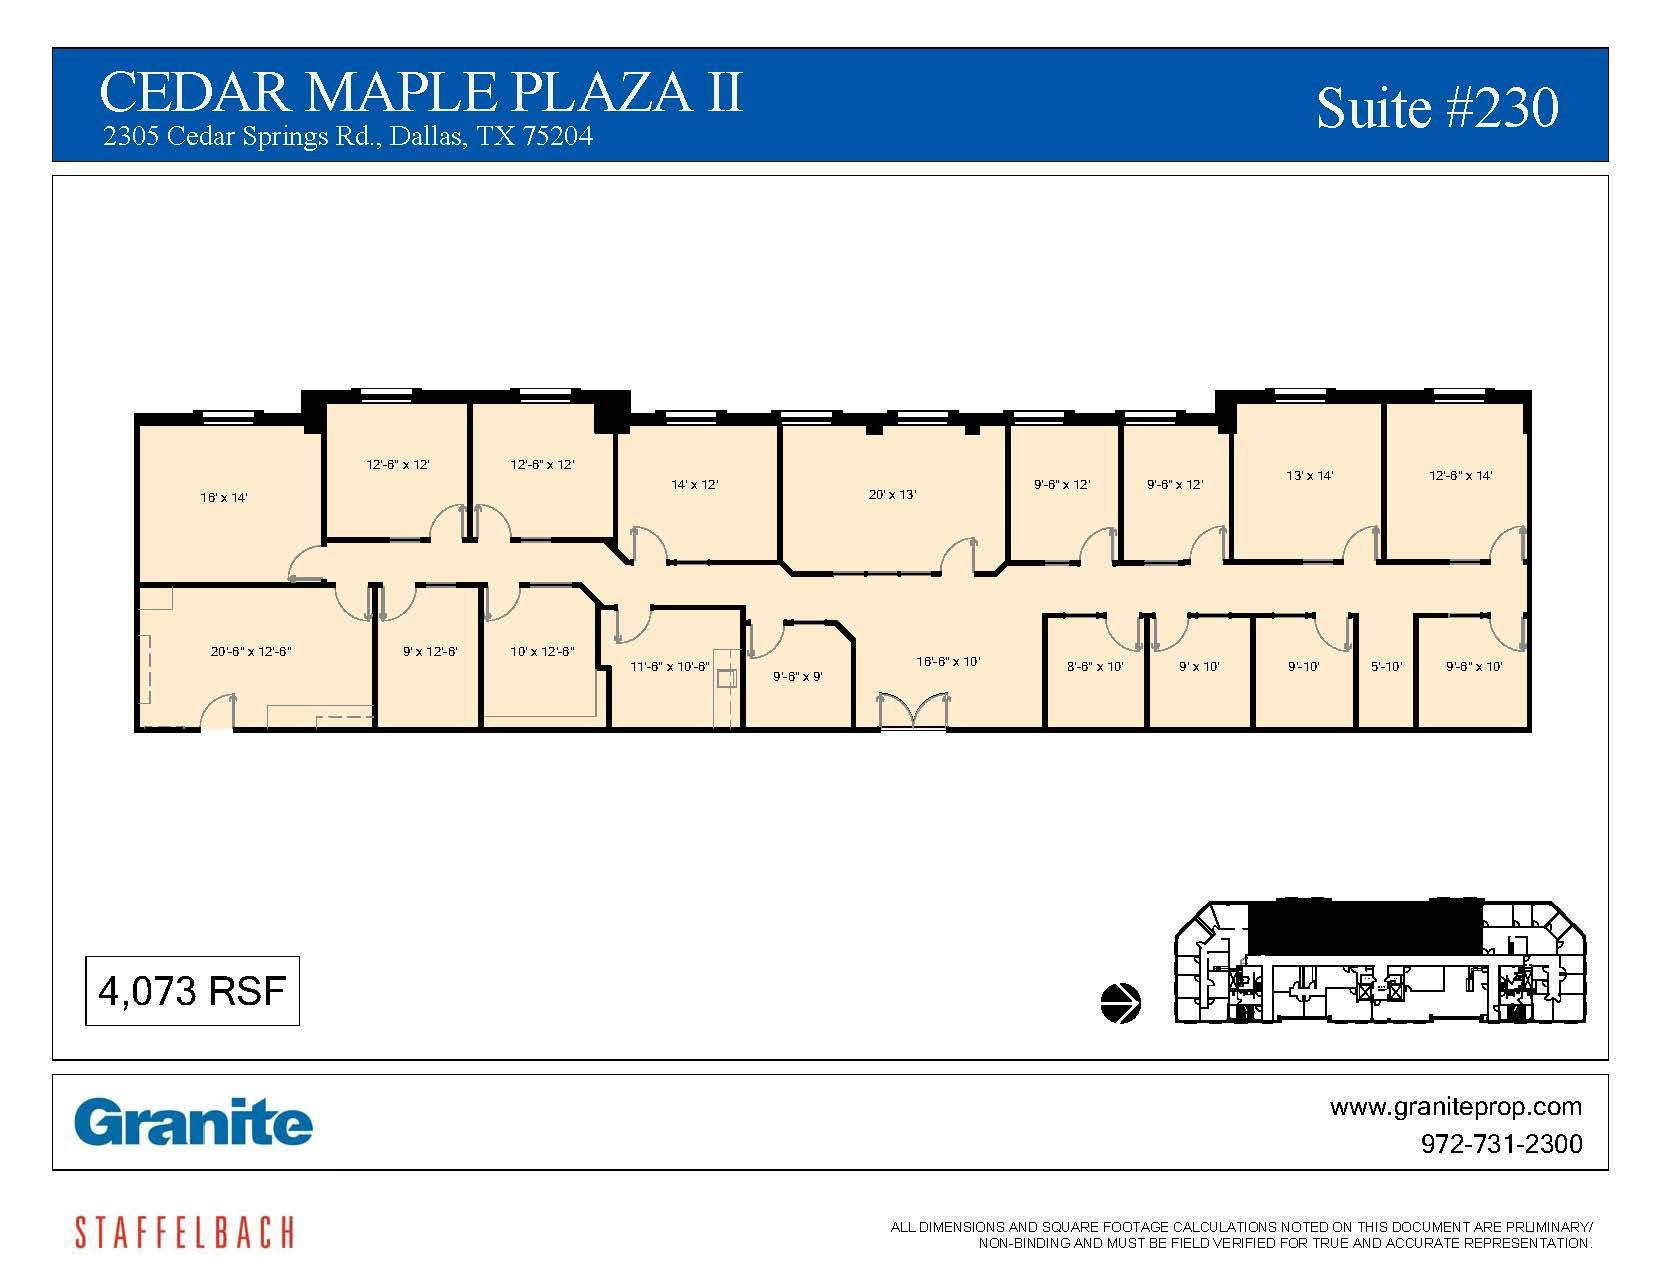 Granite | Cedar Maple Plaza I, II, & III - Cedar Maple Plaza II Suite 230